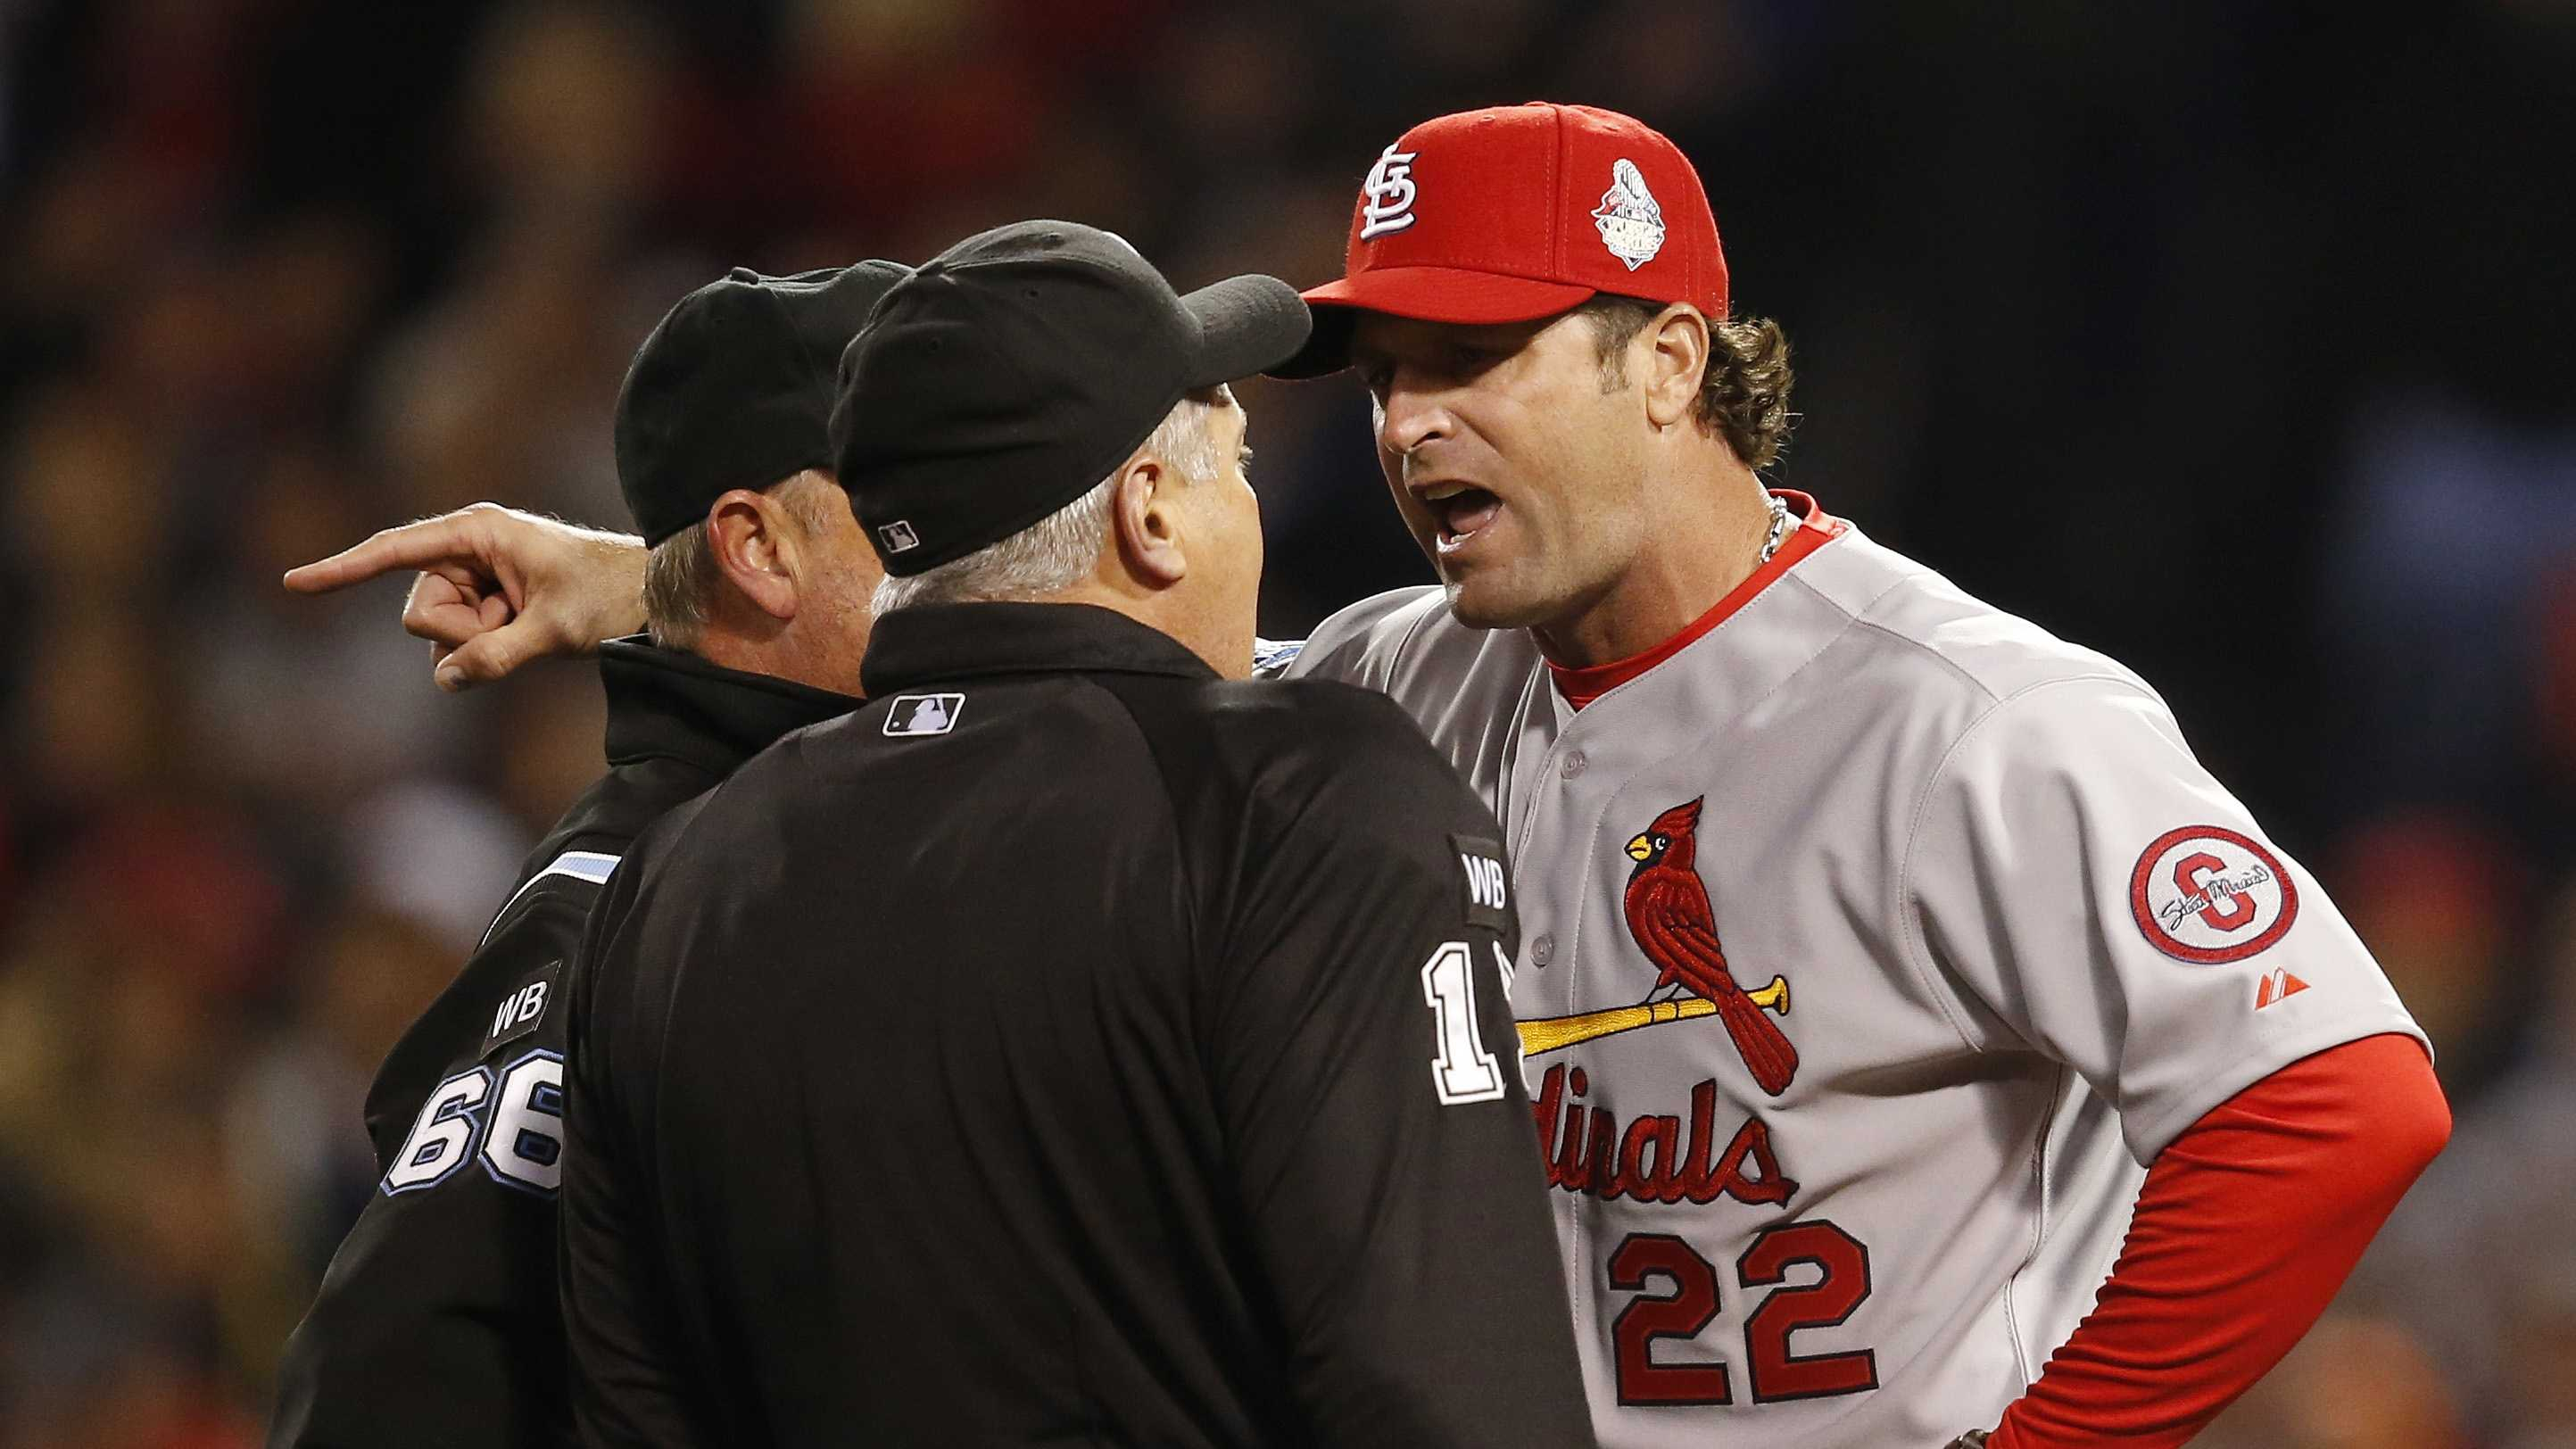 St. Louis Cardinals manager Mike Matheny argues a call during the first inning of Game 1 of baseball's World Series against the Boston Red Sox Wednesday, Oct. 23, 2013, in Boston.